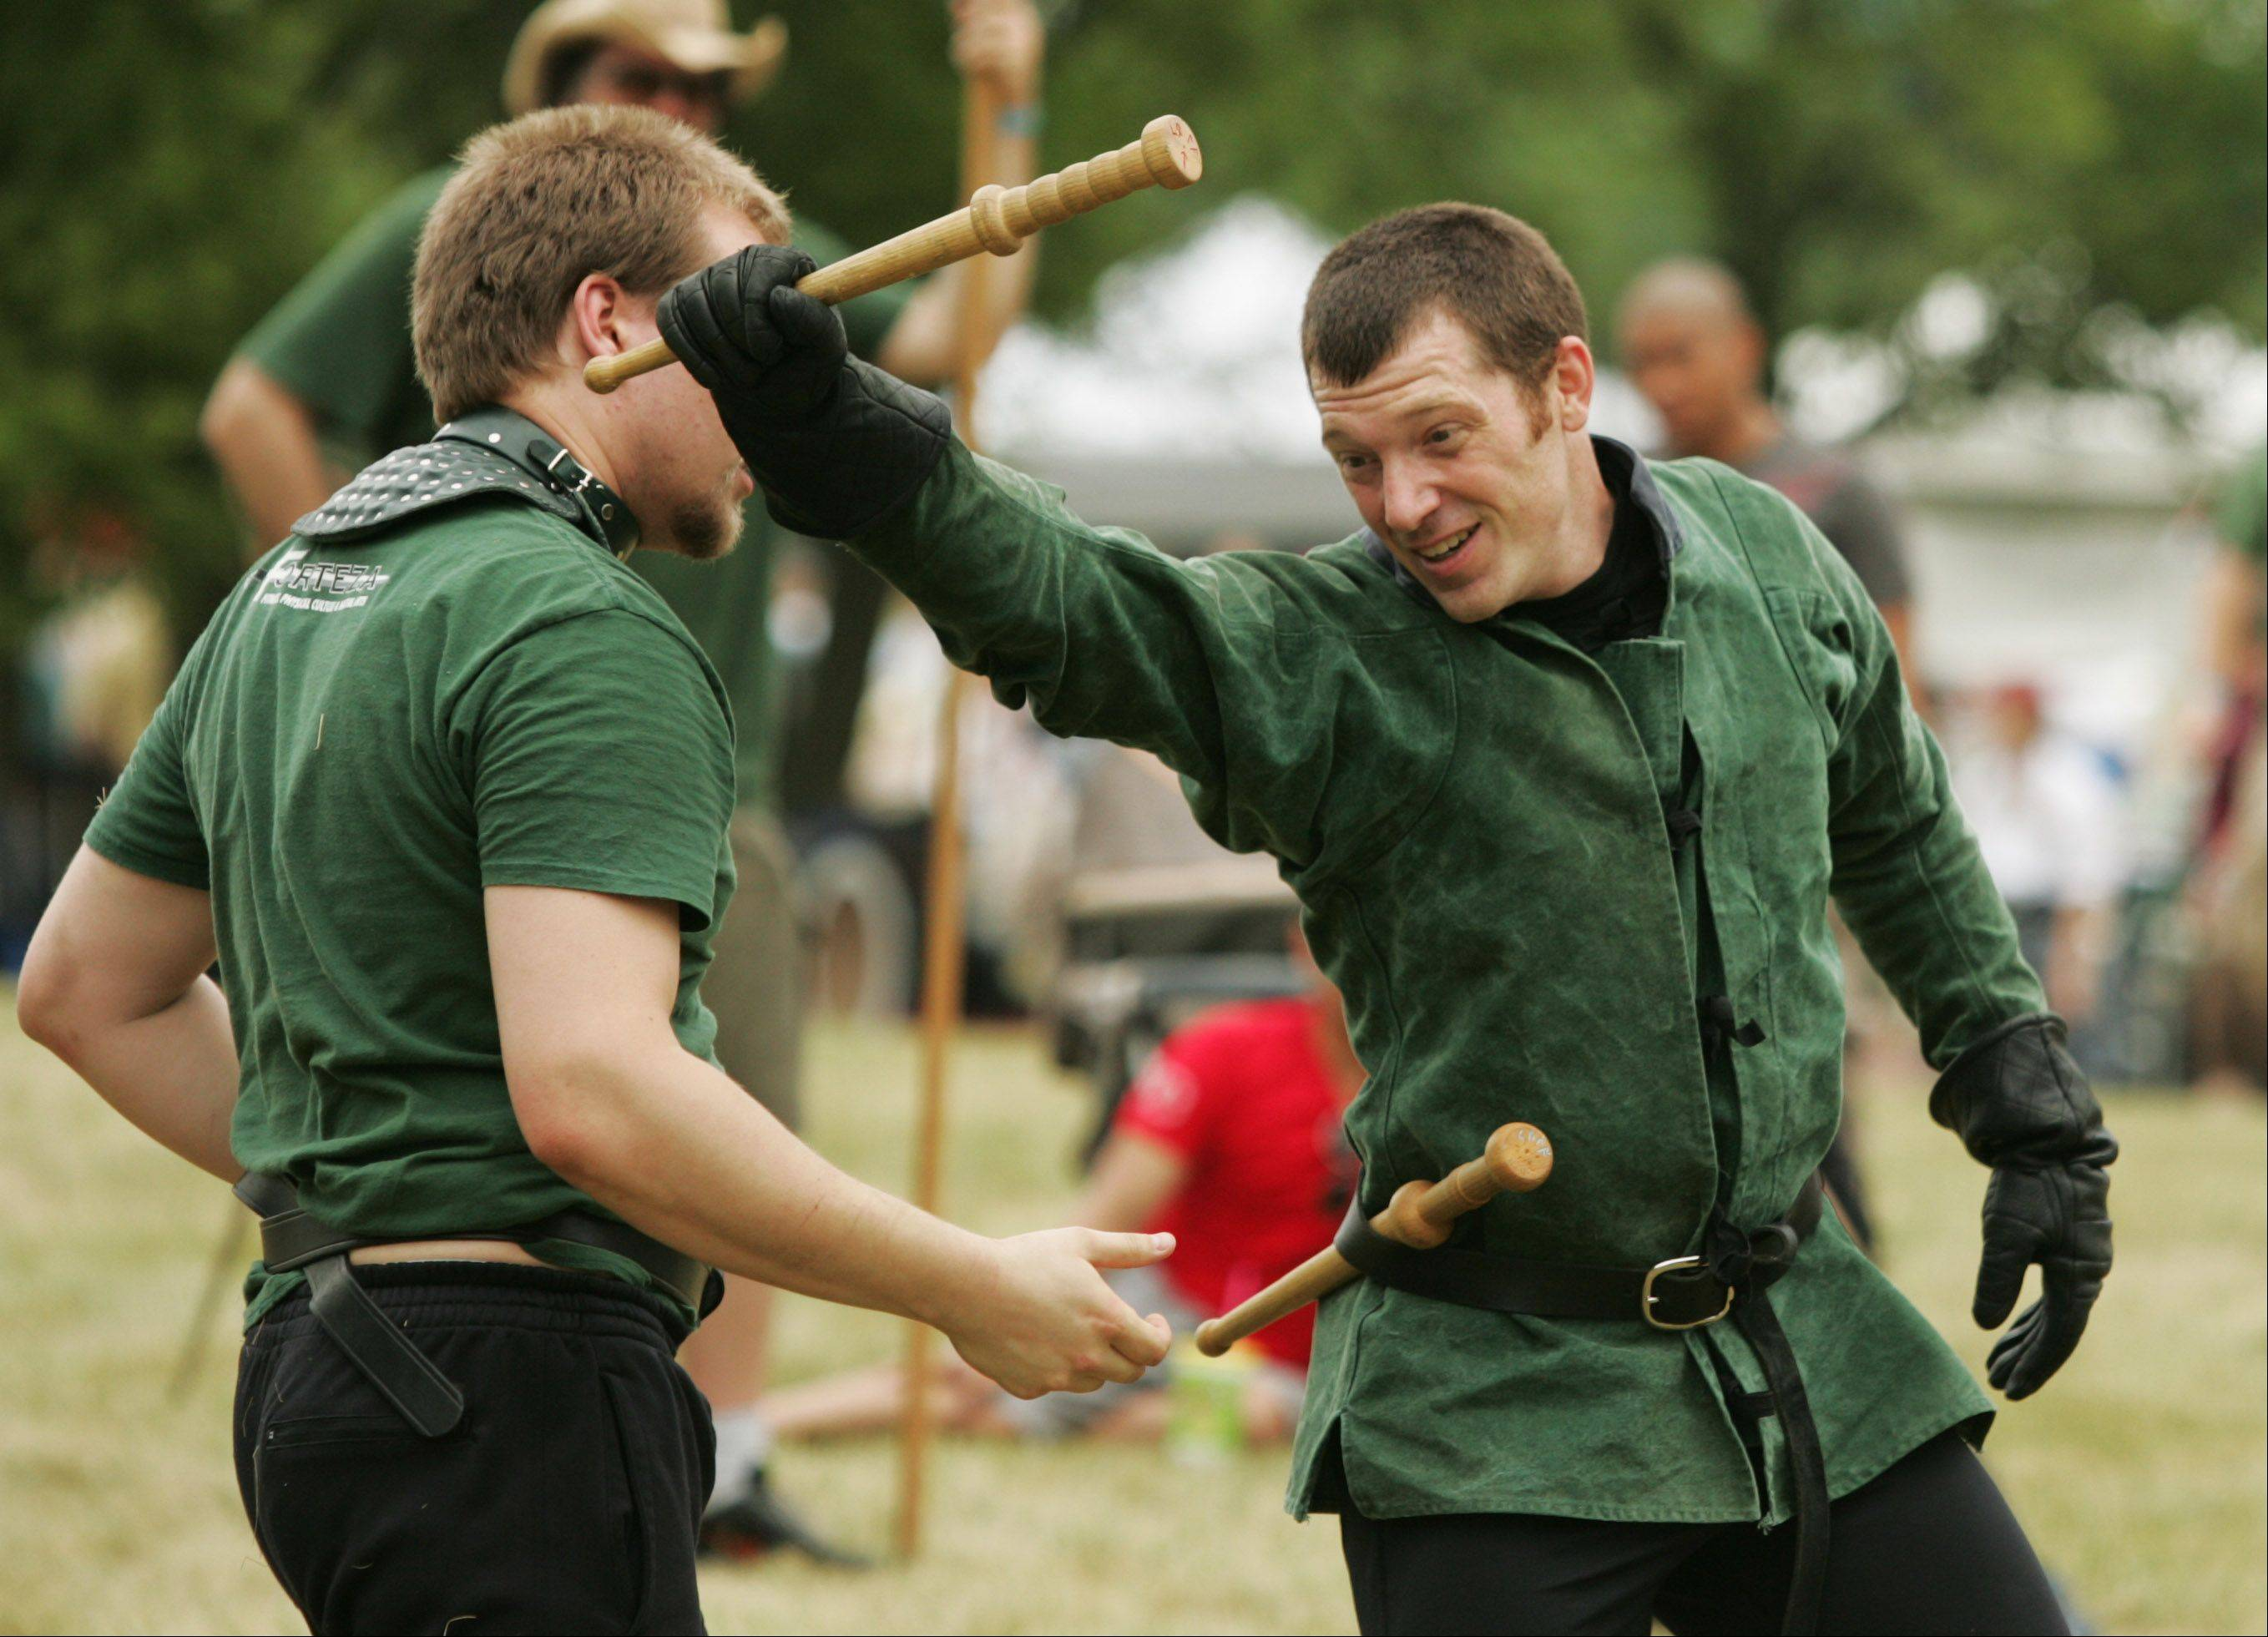 Check out the competitions at the Scottish Festival and Highland Games in Itasca.